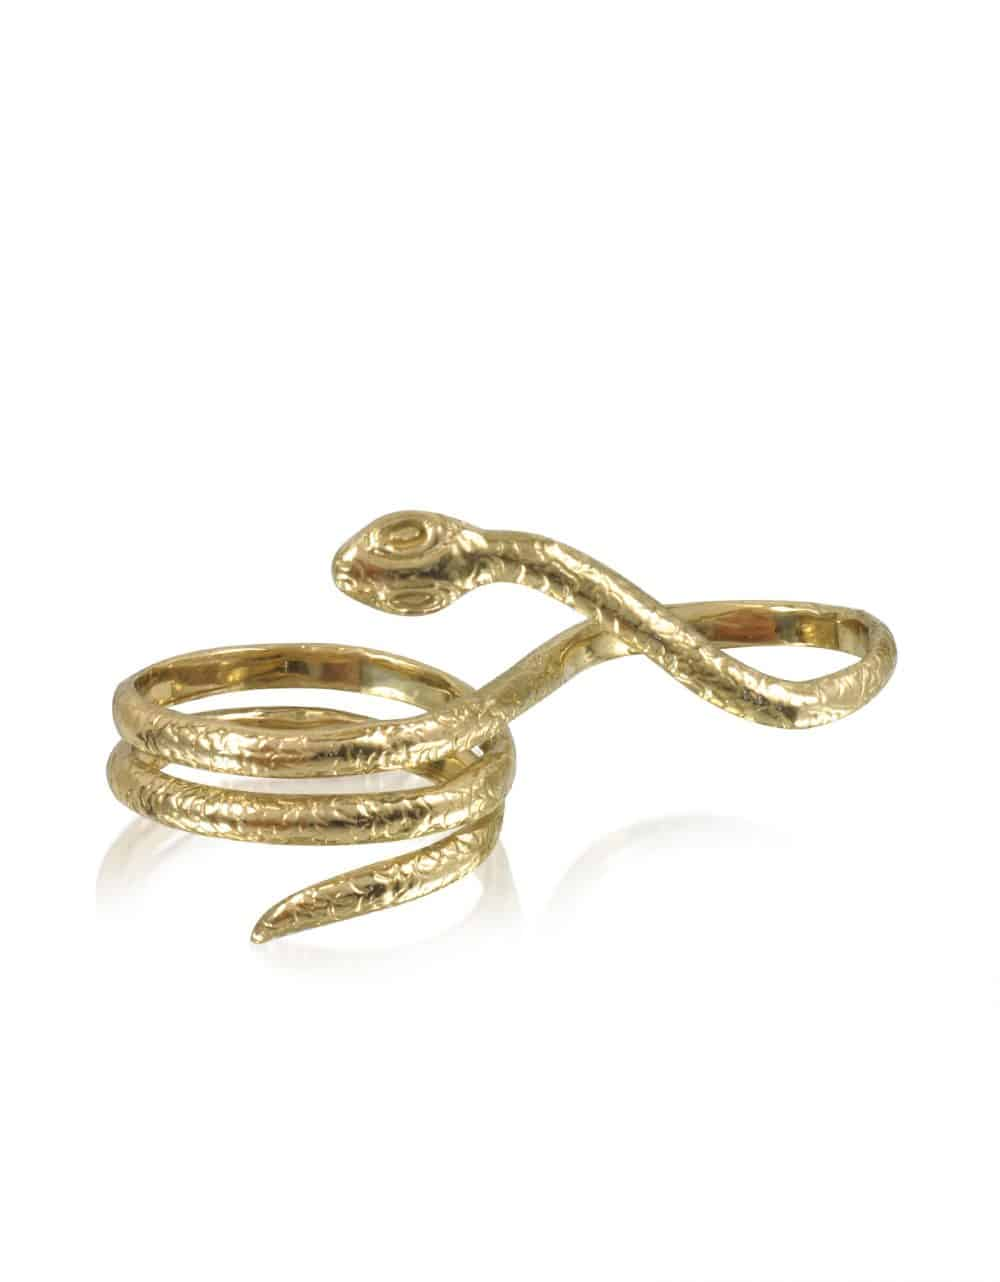 Bernard Delettrez Rings Two Fingers Bronze Ring w/3 Laps Snake